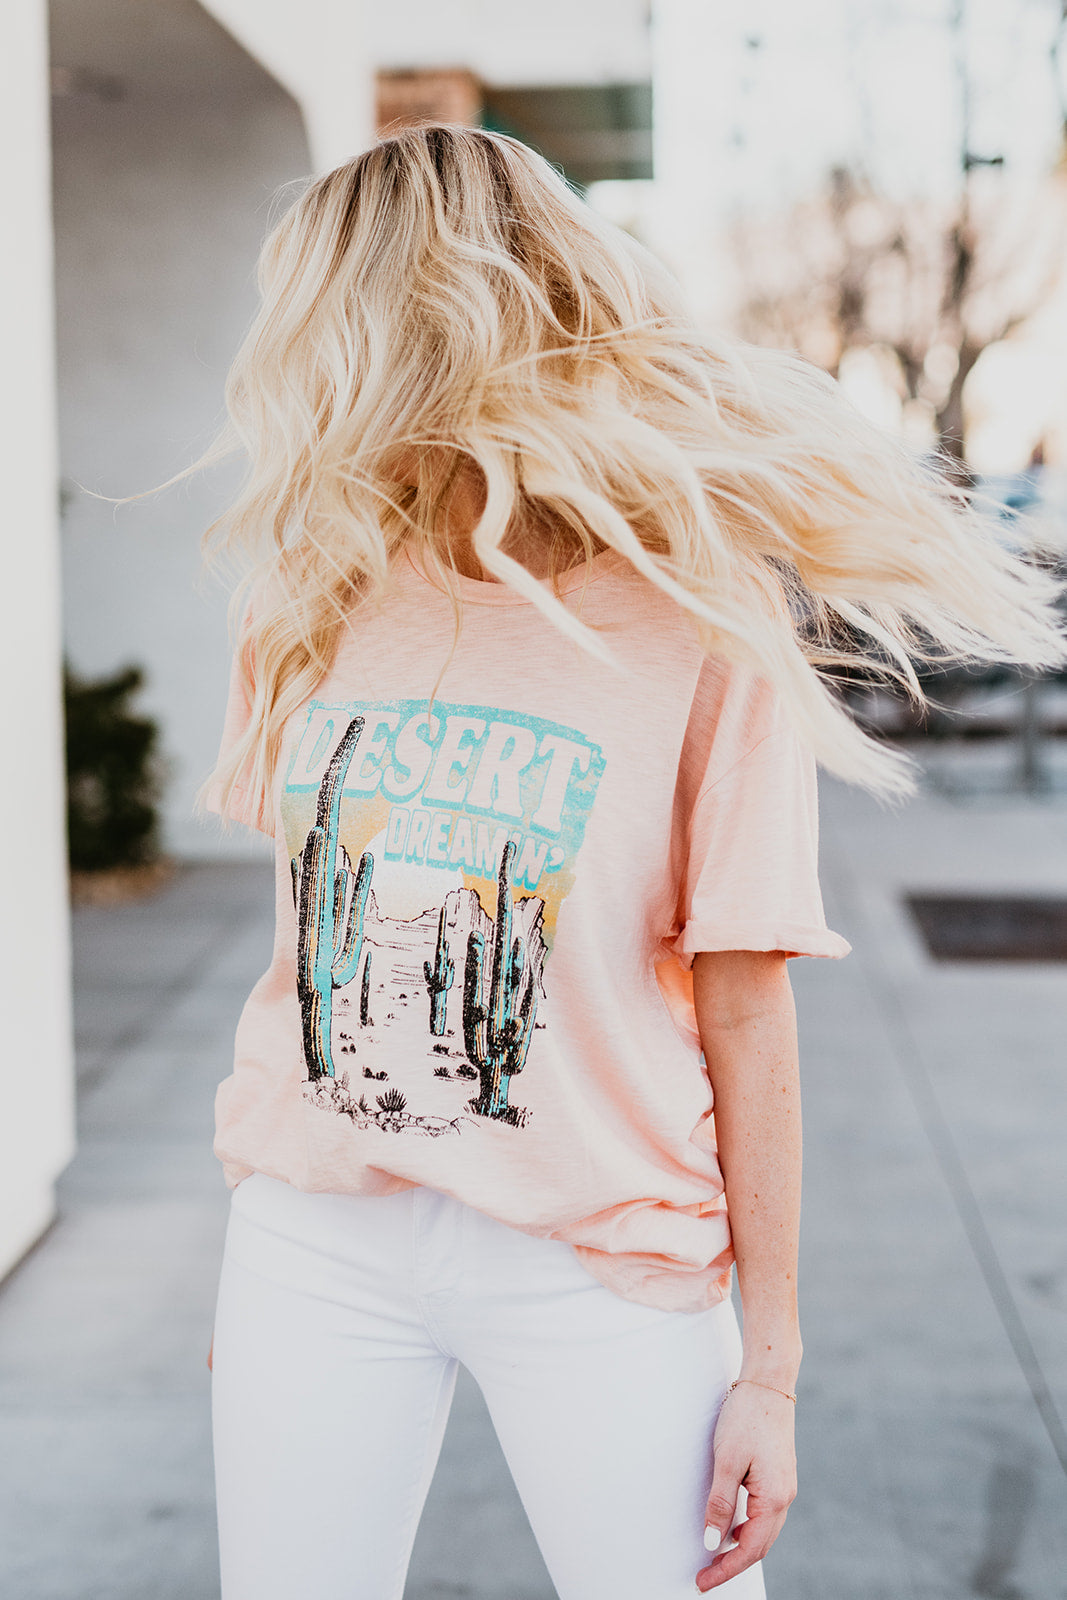 THE DESERT DREAMIN' GRAPHIC TEE IN PEACH